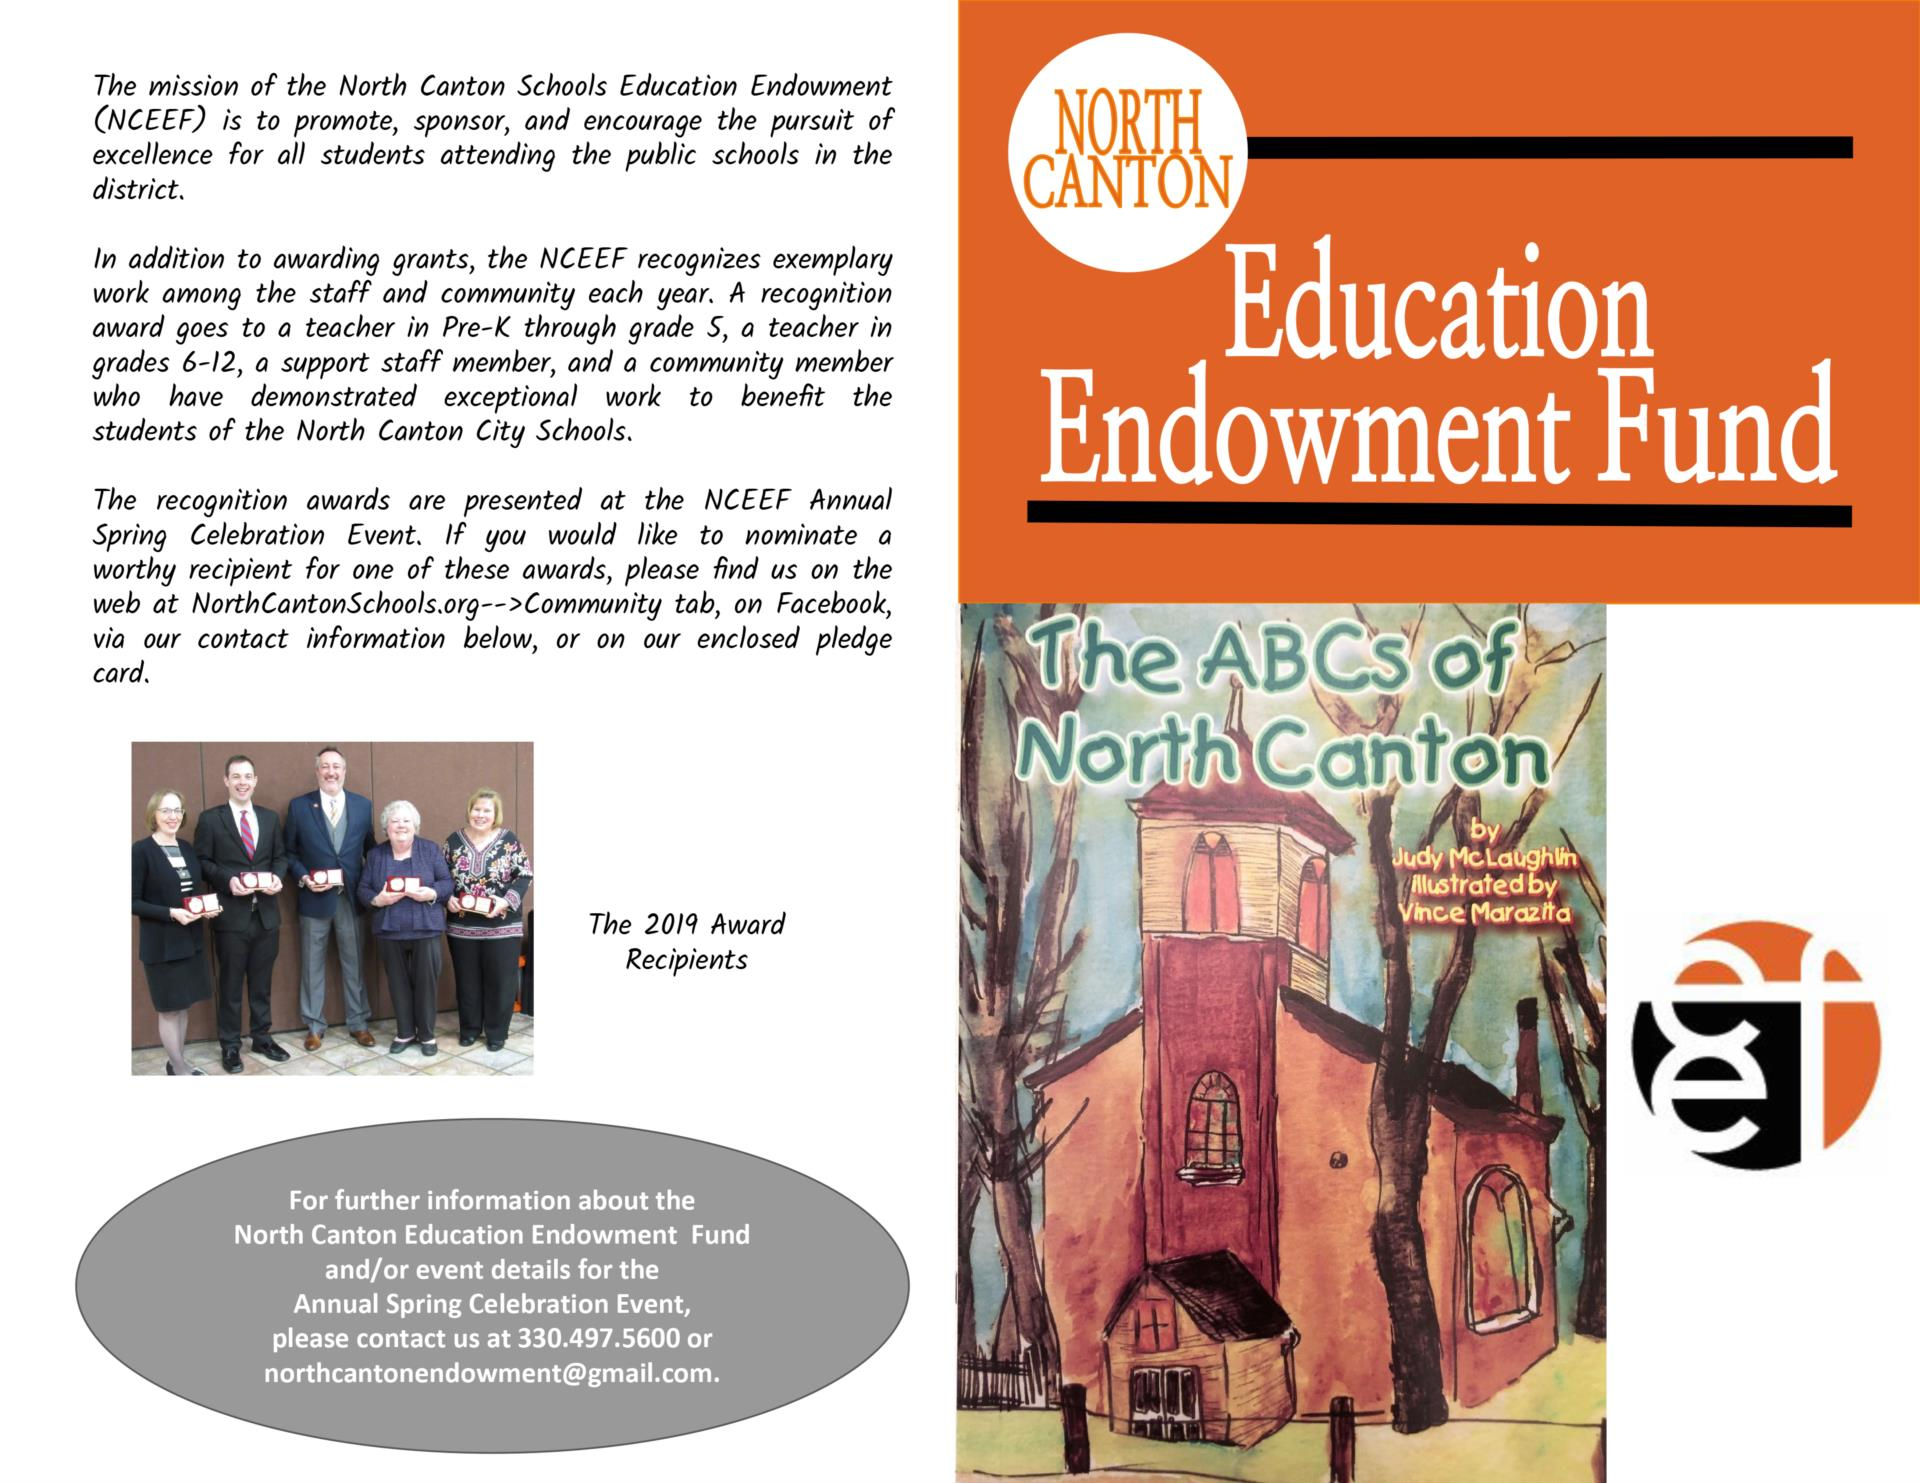 brochure in orange and white promoting the Education Endowment Fund